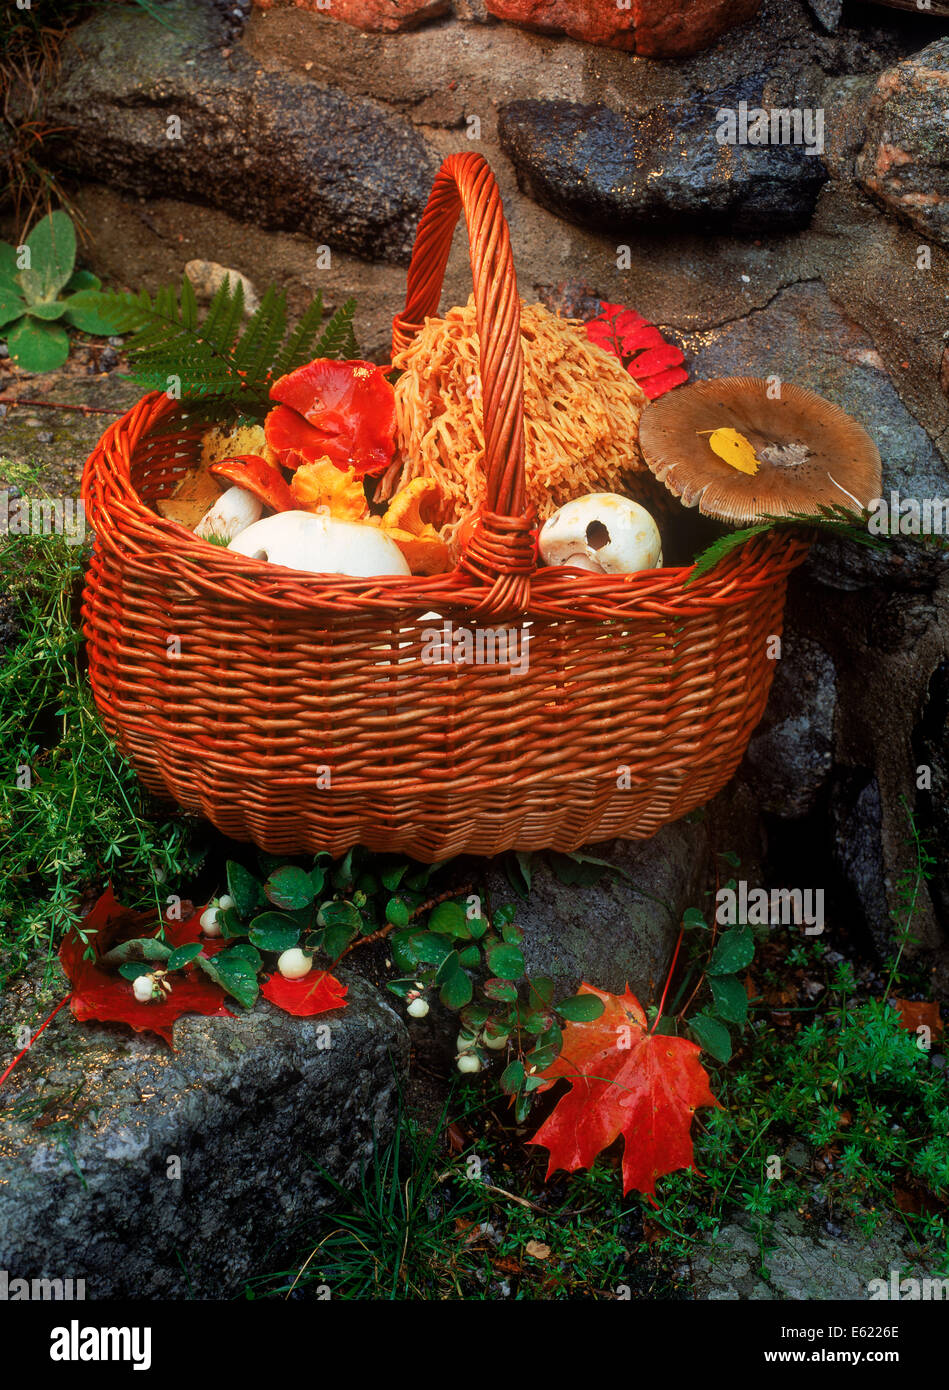 Basket of freshly picked mushrooms and fungi in Sweden - Stock Image